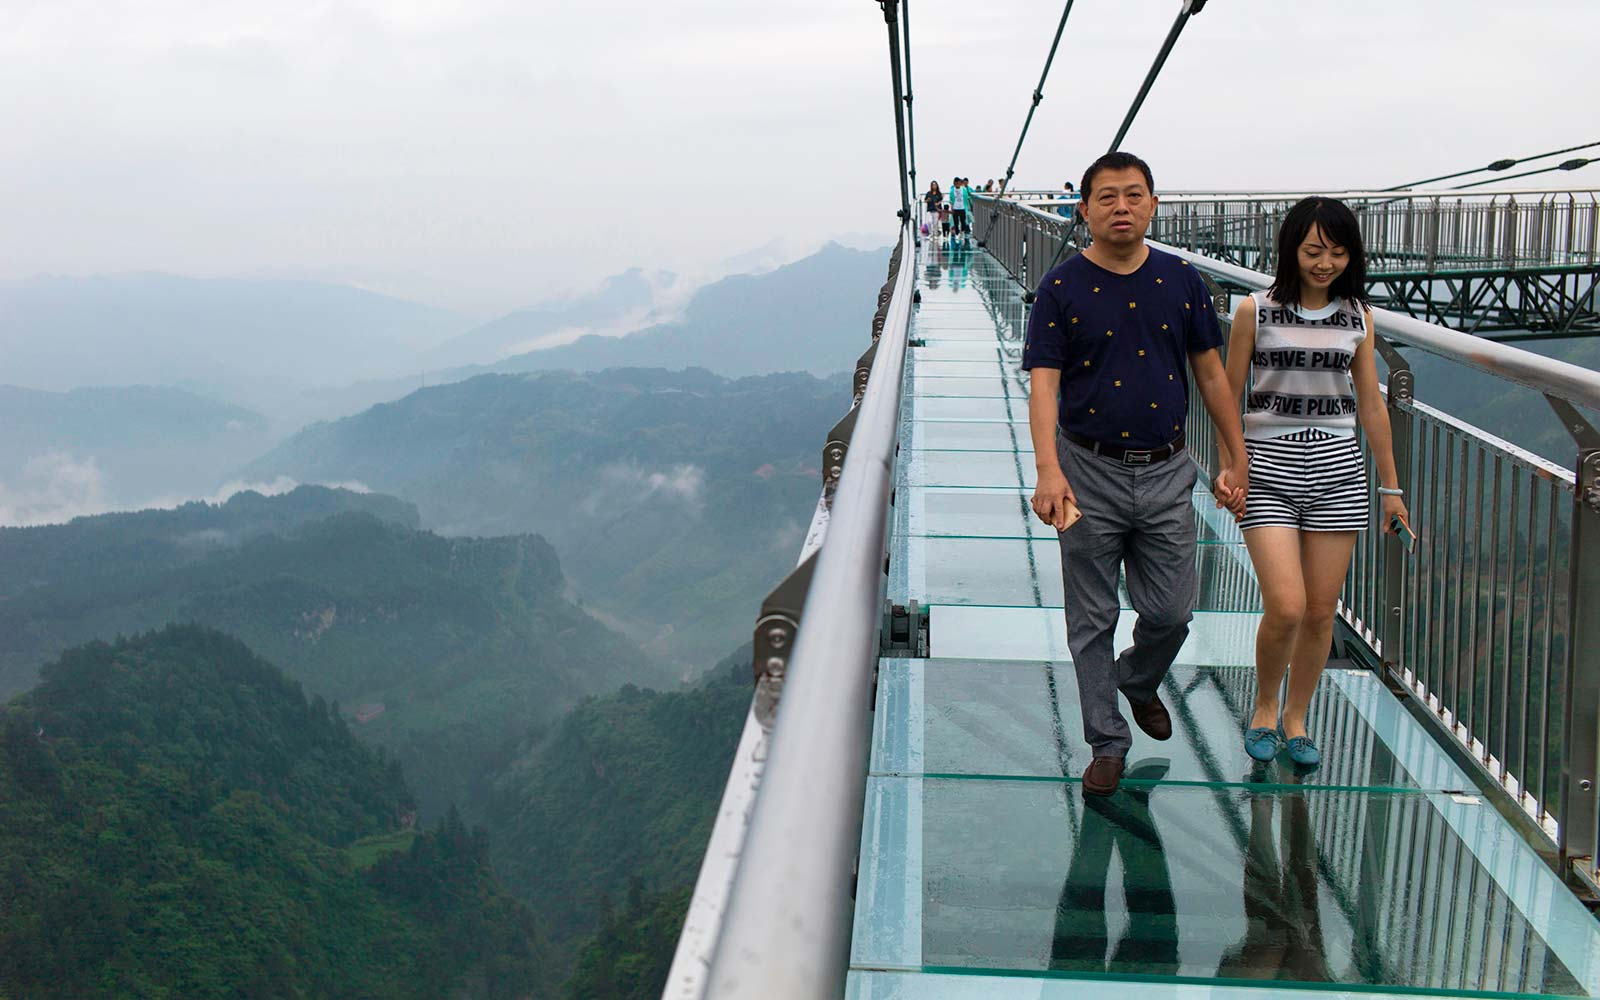 Glass-bottomed skywalk.